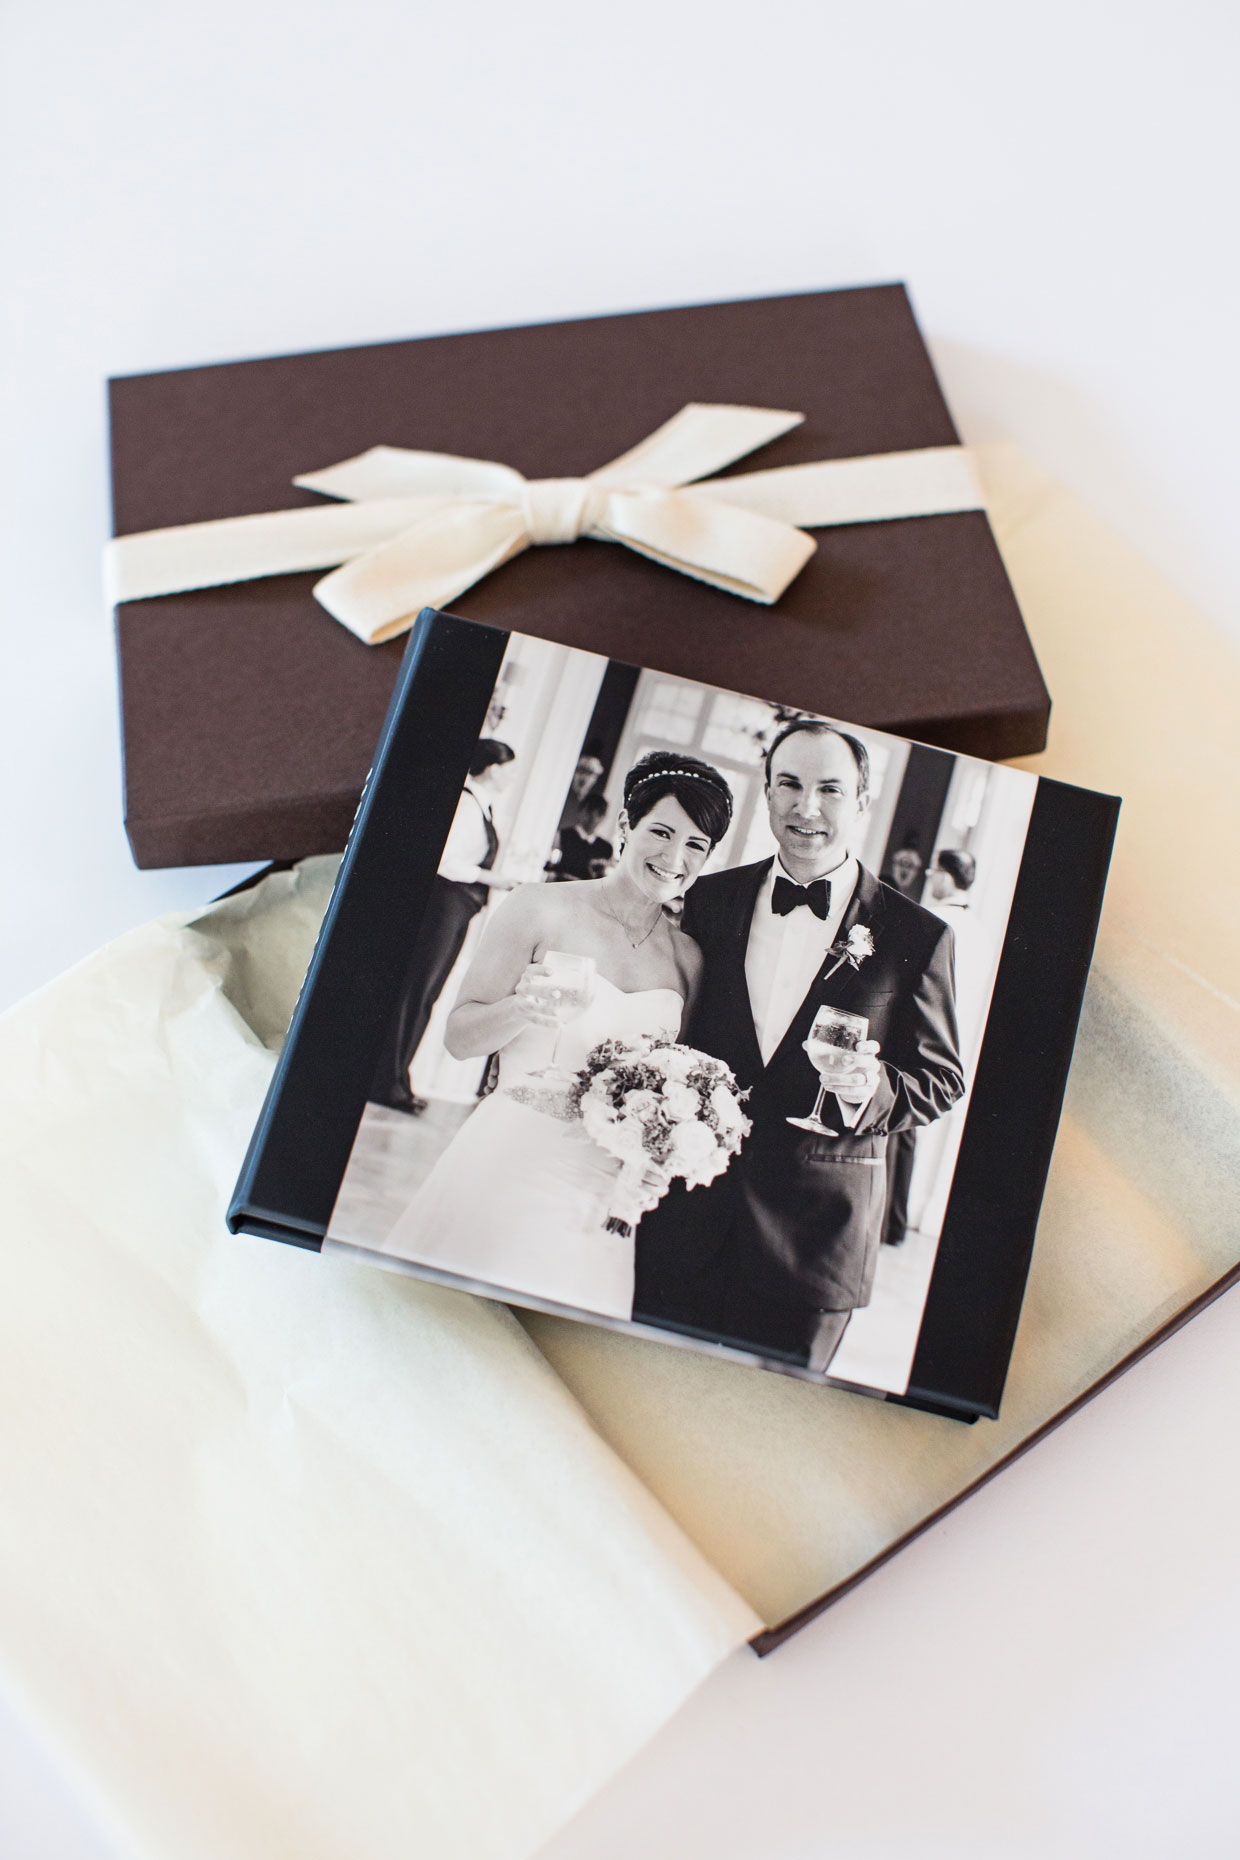 Kathi_Littwin_Photography_NYC_Wedding_Albums7070